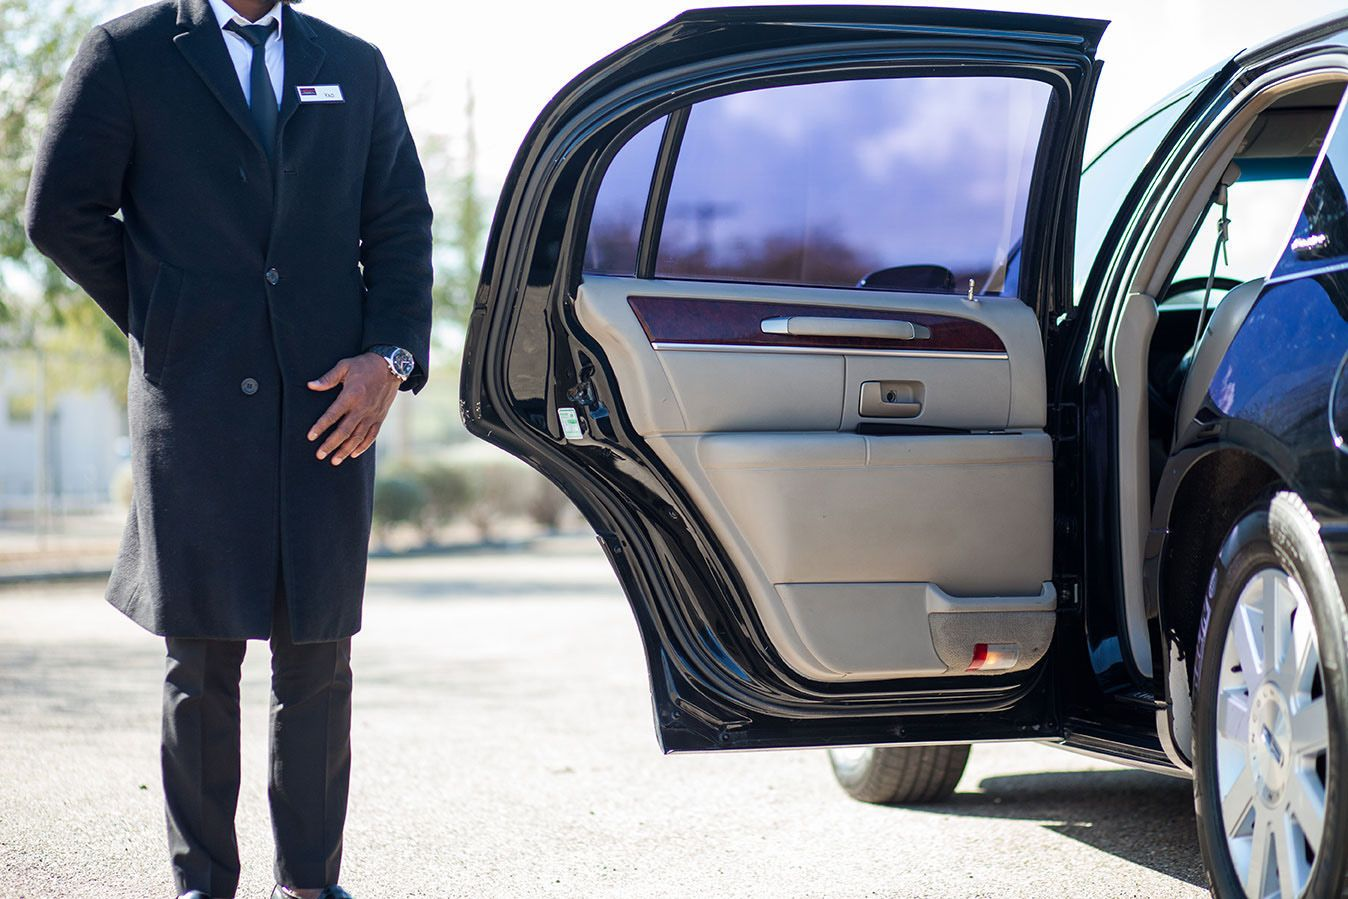 Contact Prestige Taxi For Most Efficient Wedding Limo Service In Cincinnati We Have A Wide Range Of Luxury Ca Limousine Black Car Service Airport Limo Service